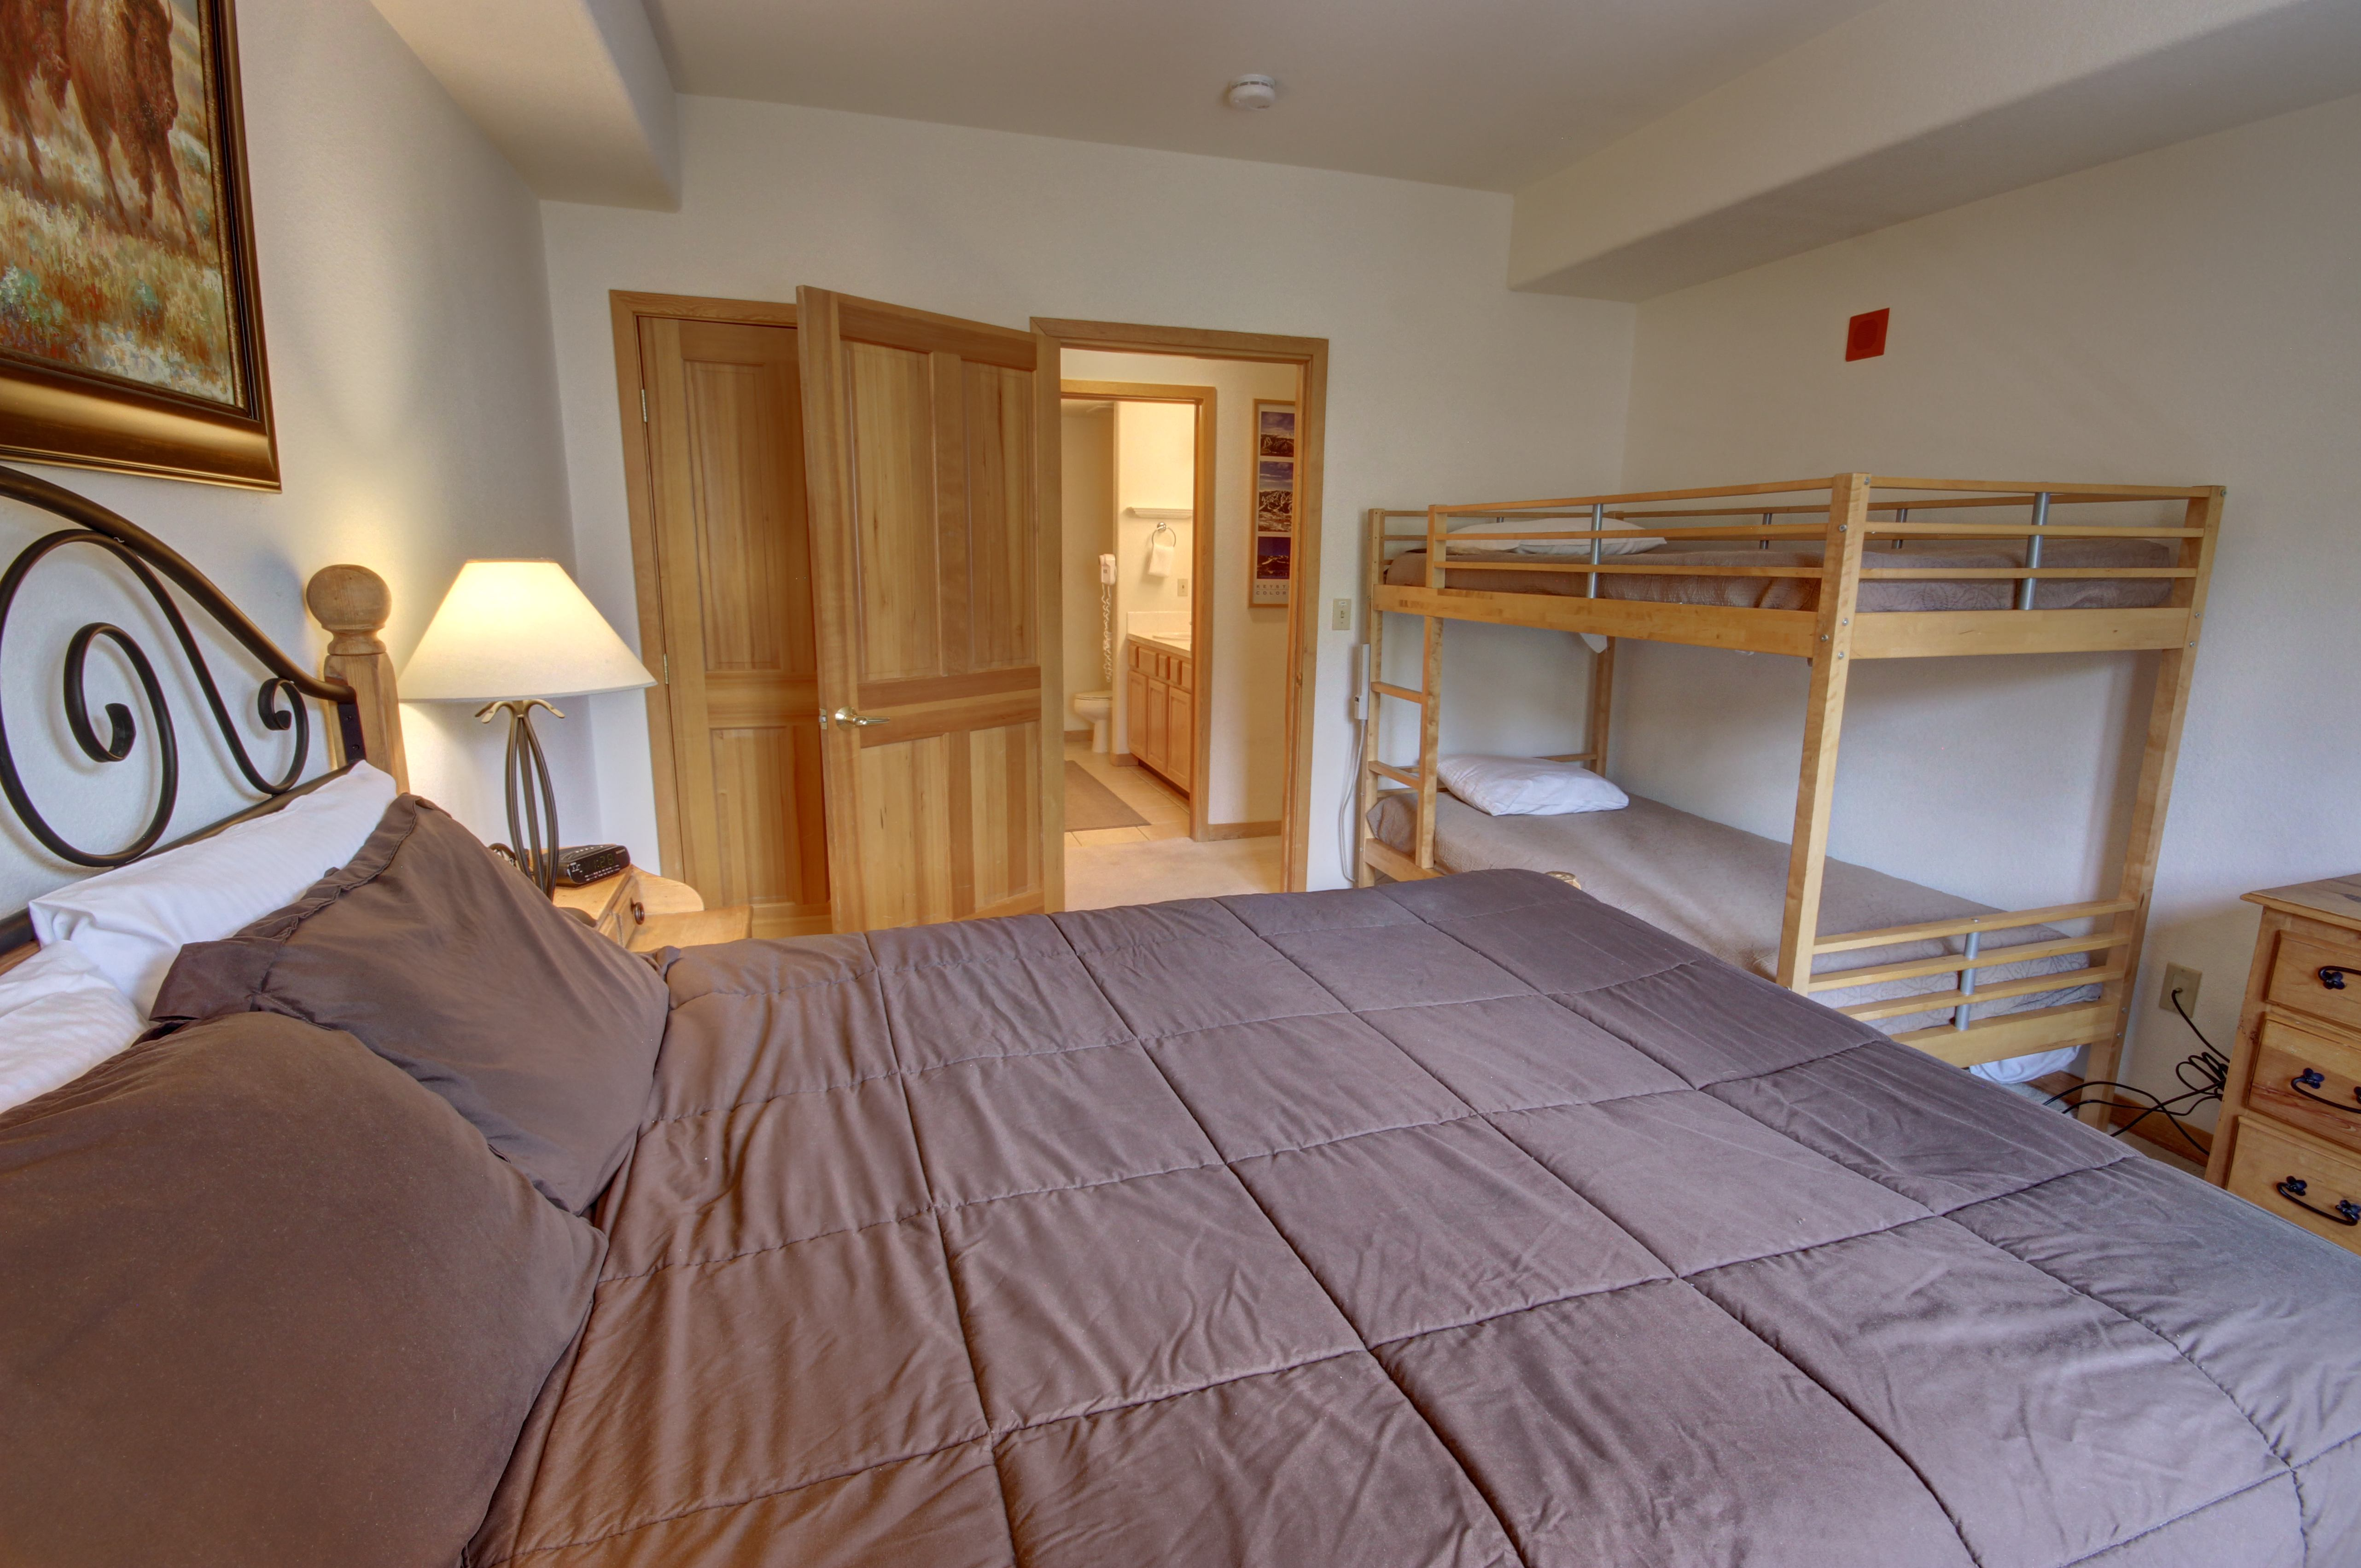 Bedroom with plenty of sleeping space for the kids or a couple